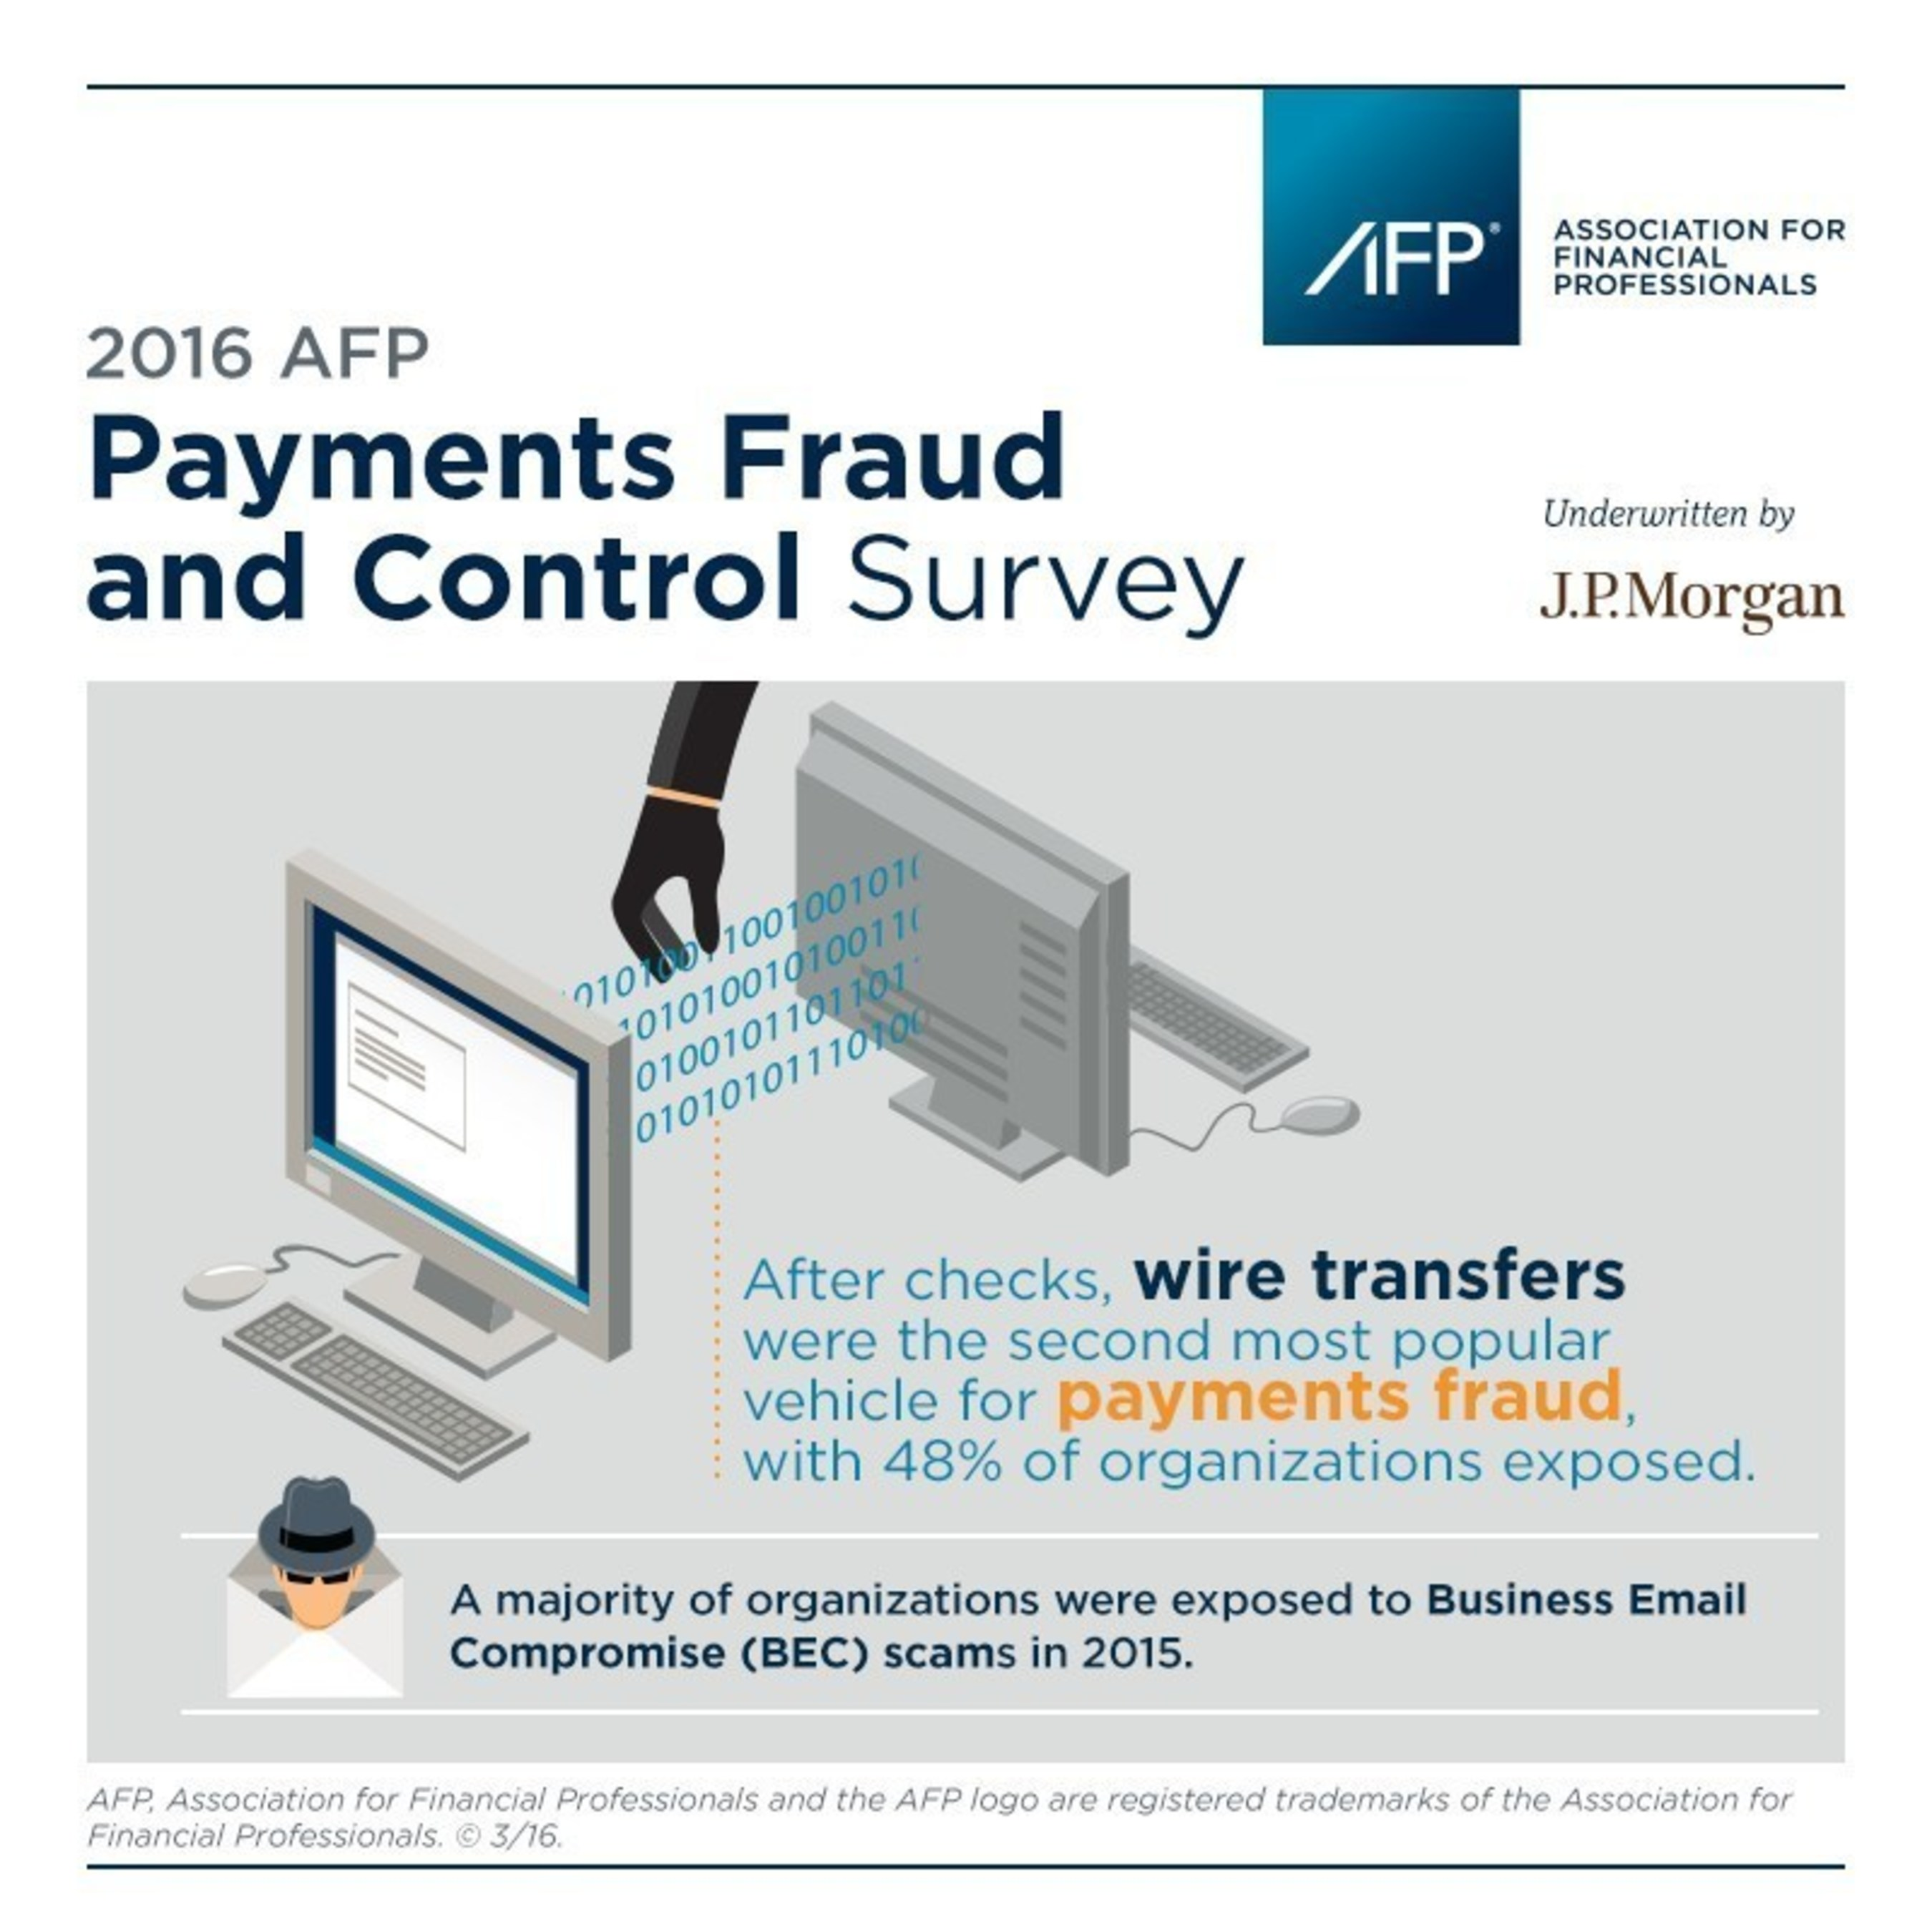 Association for Financial Professionals' Annual Payments Fraud and Control Survey finds wire fraud to be skyrocketing possibly due to increasingly popular business email compromise scams. Read the full results at www.AFPonline.org/Fraud.